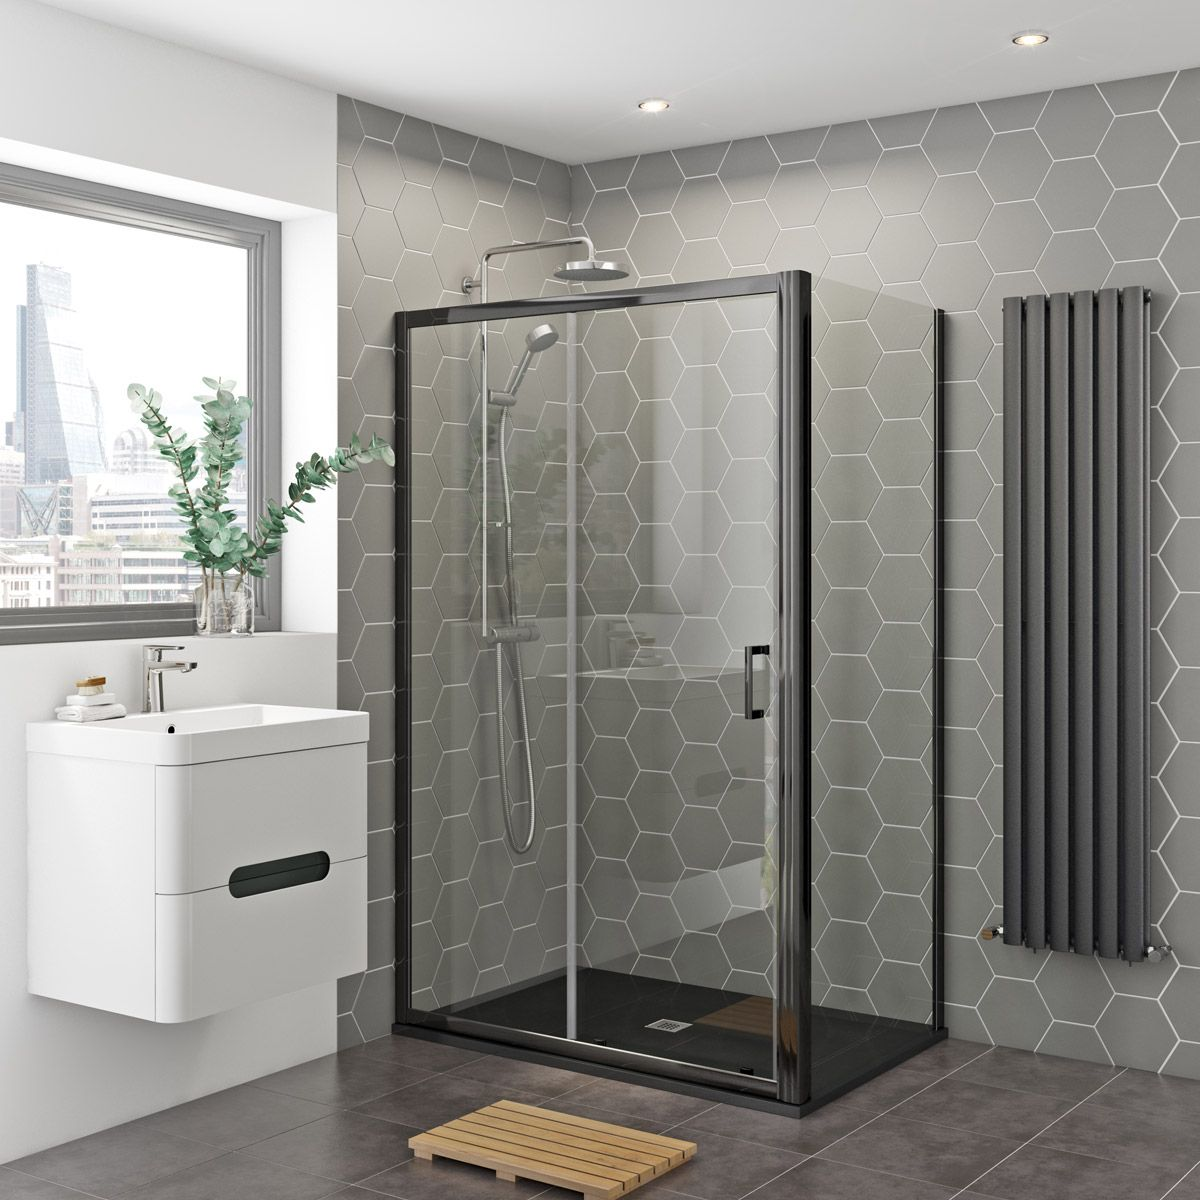 Mira Agile Shower Bundle With Mode Black Enclosure And Slate Effect